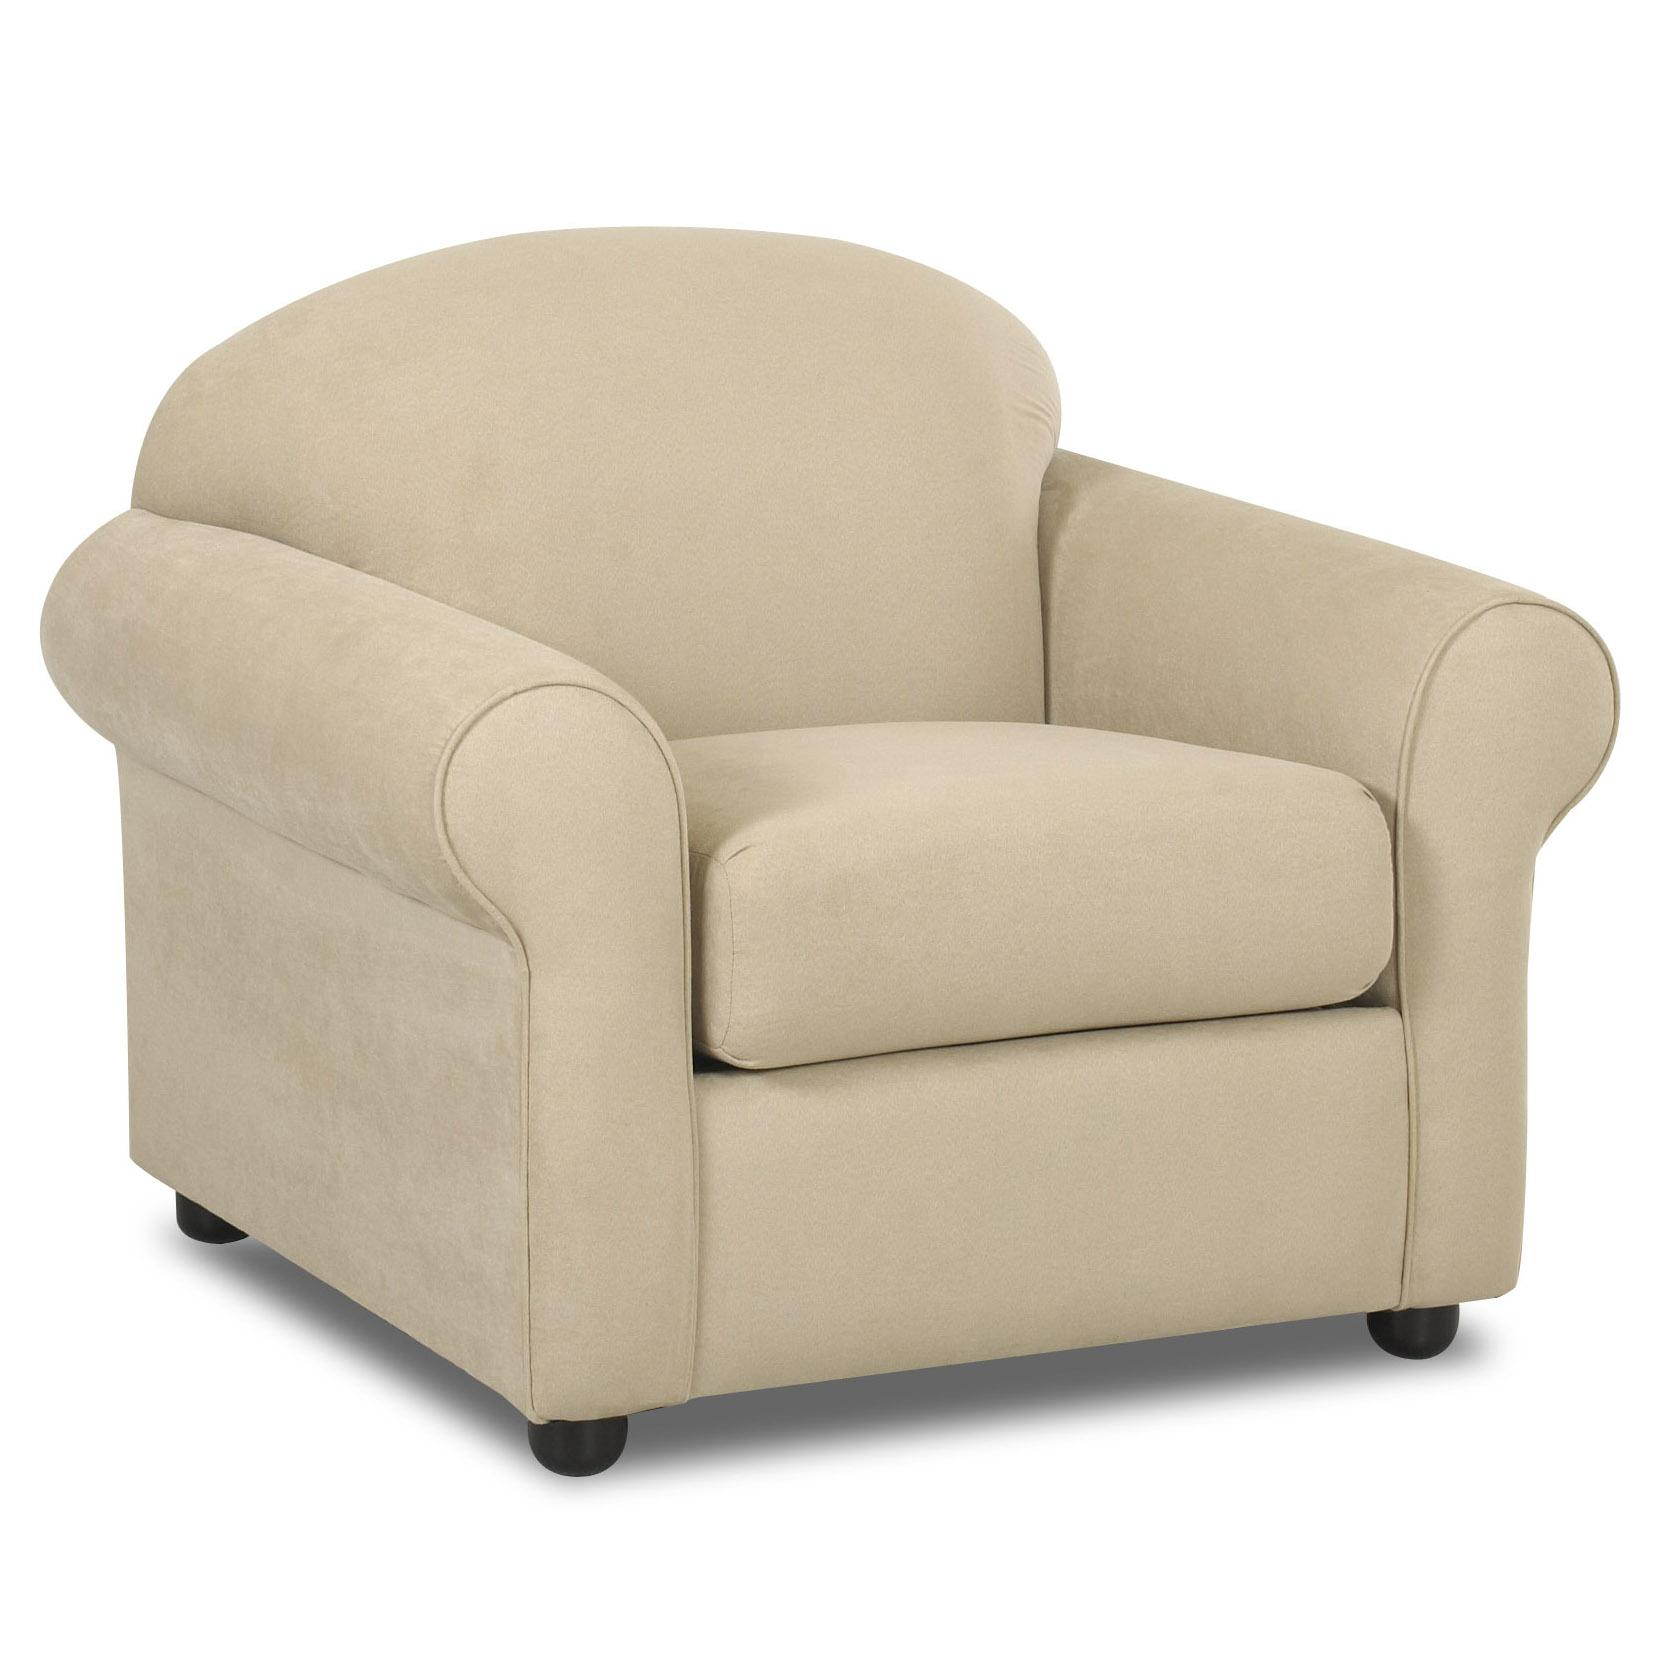 low profile chairs small chaise lounge for bedroom klaussner possibilities chair olinde 39s